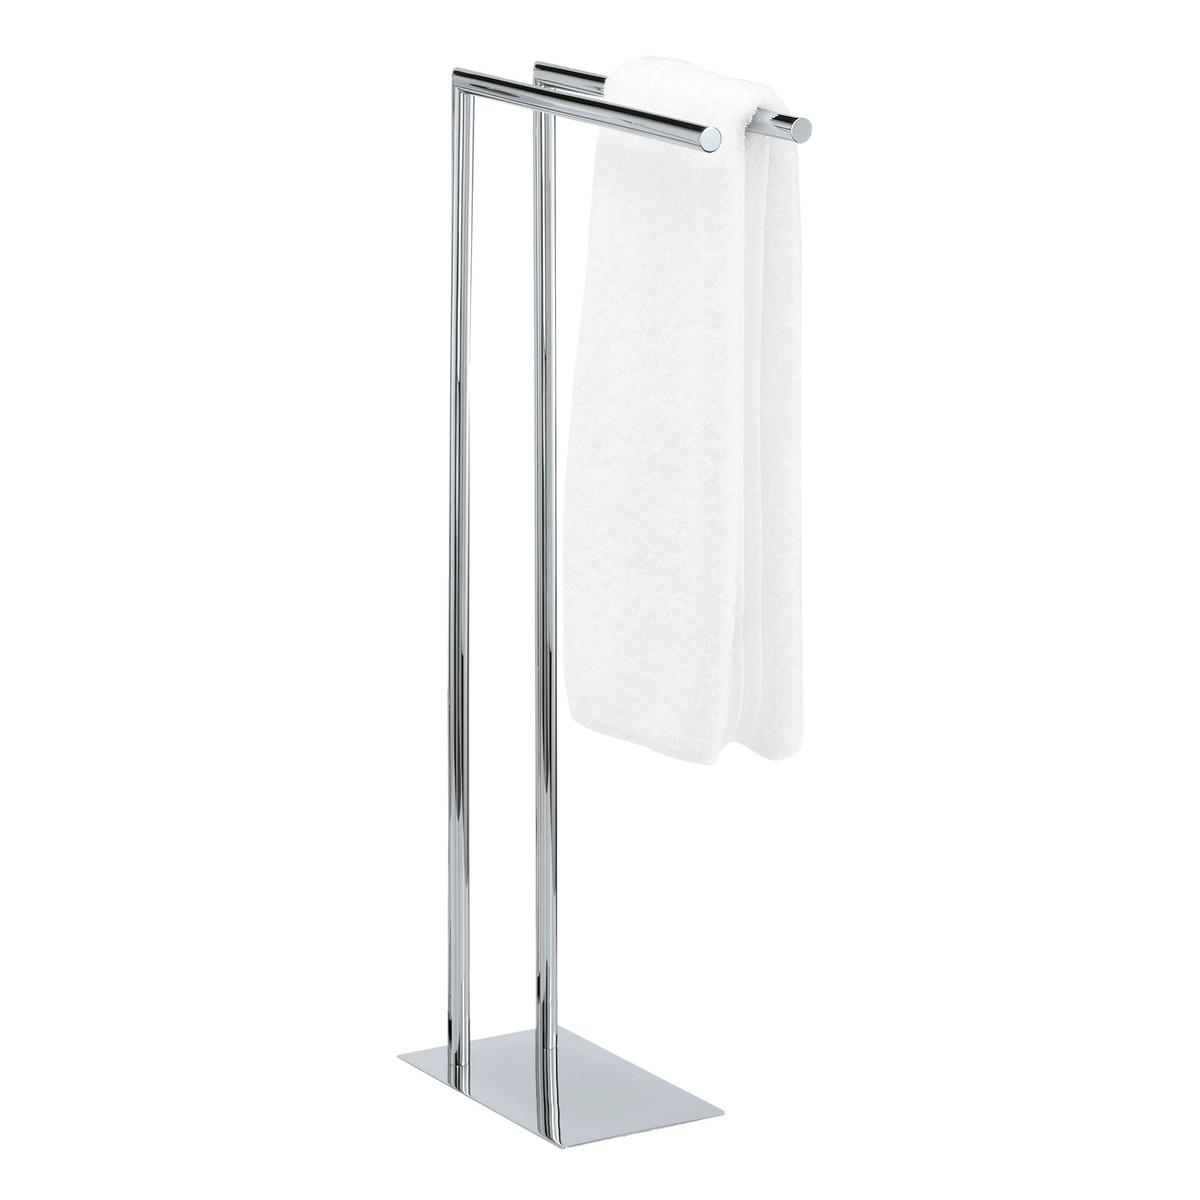 Decor Walther Straight Towel Stand